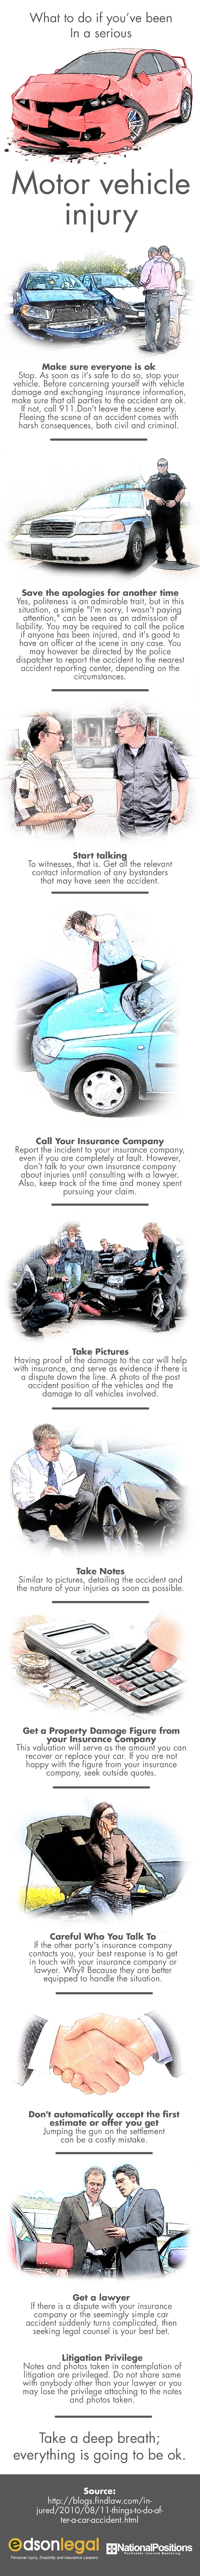 What To Do After A Motor Vehicle Accident | Edson Legal